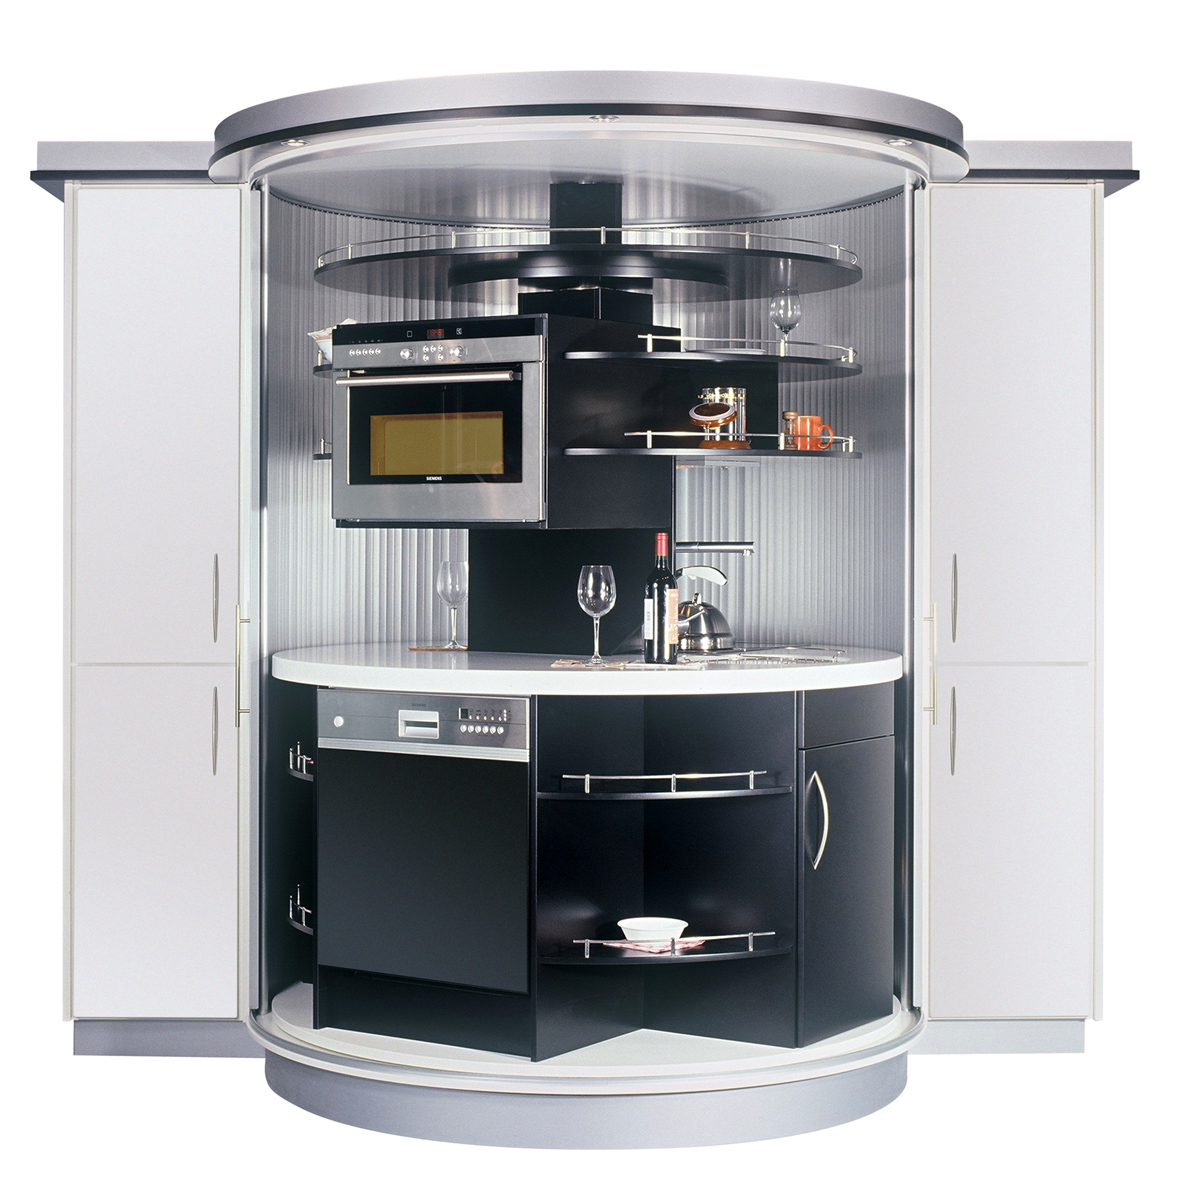 Kithen Mini: Revolving Circle Compact Kitchen